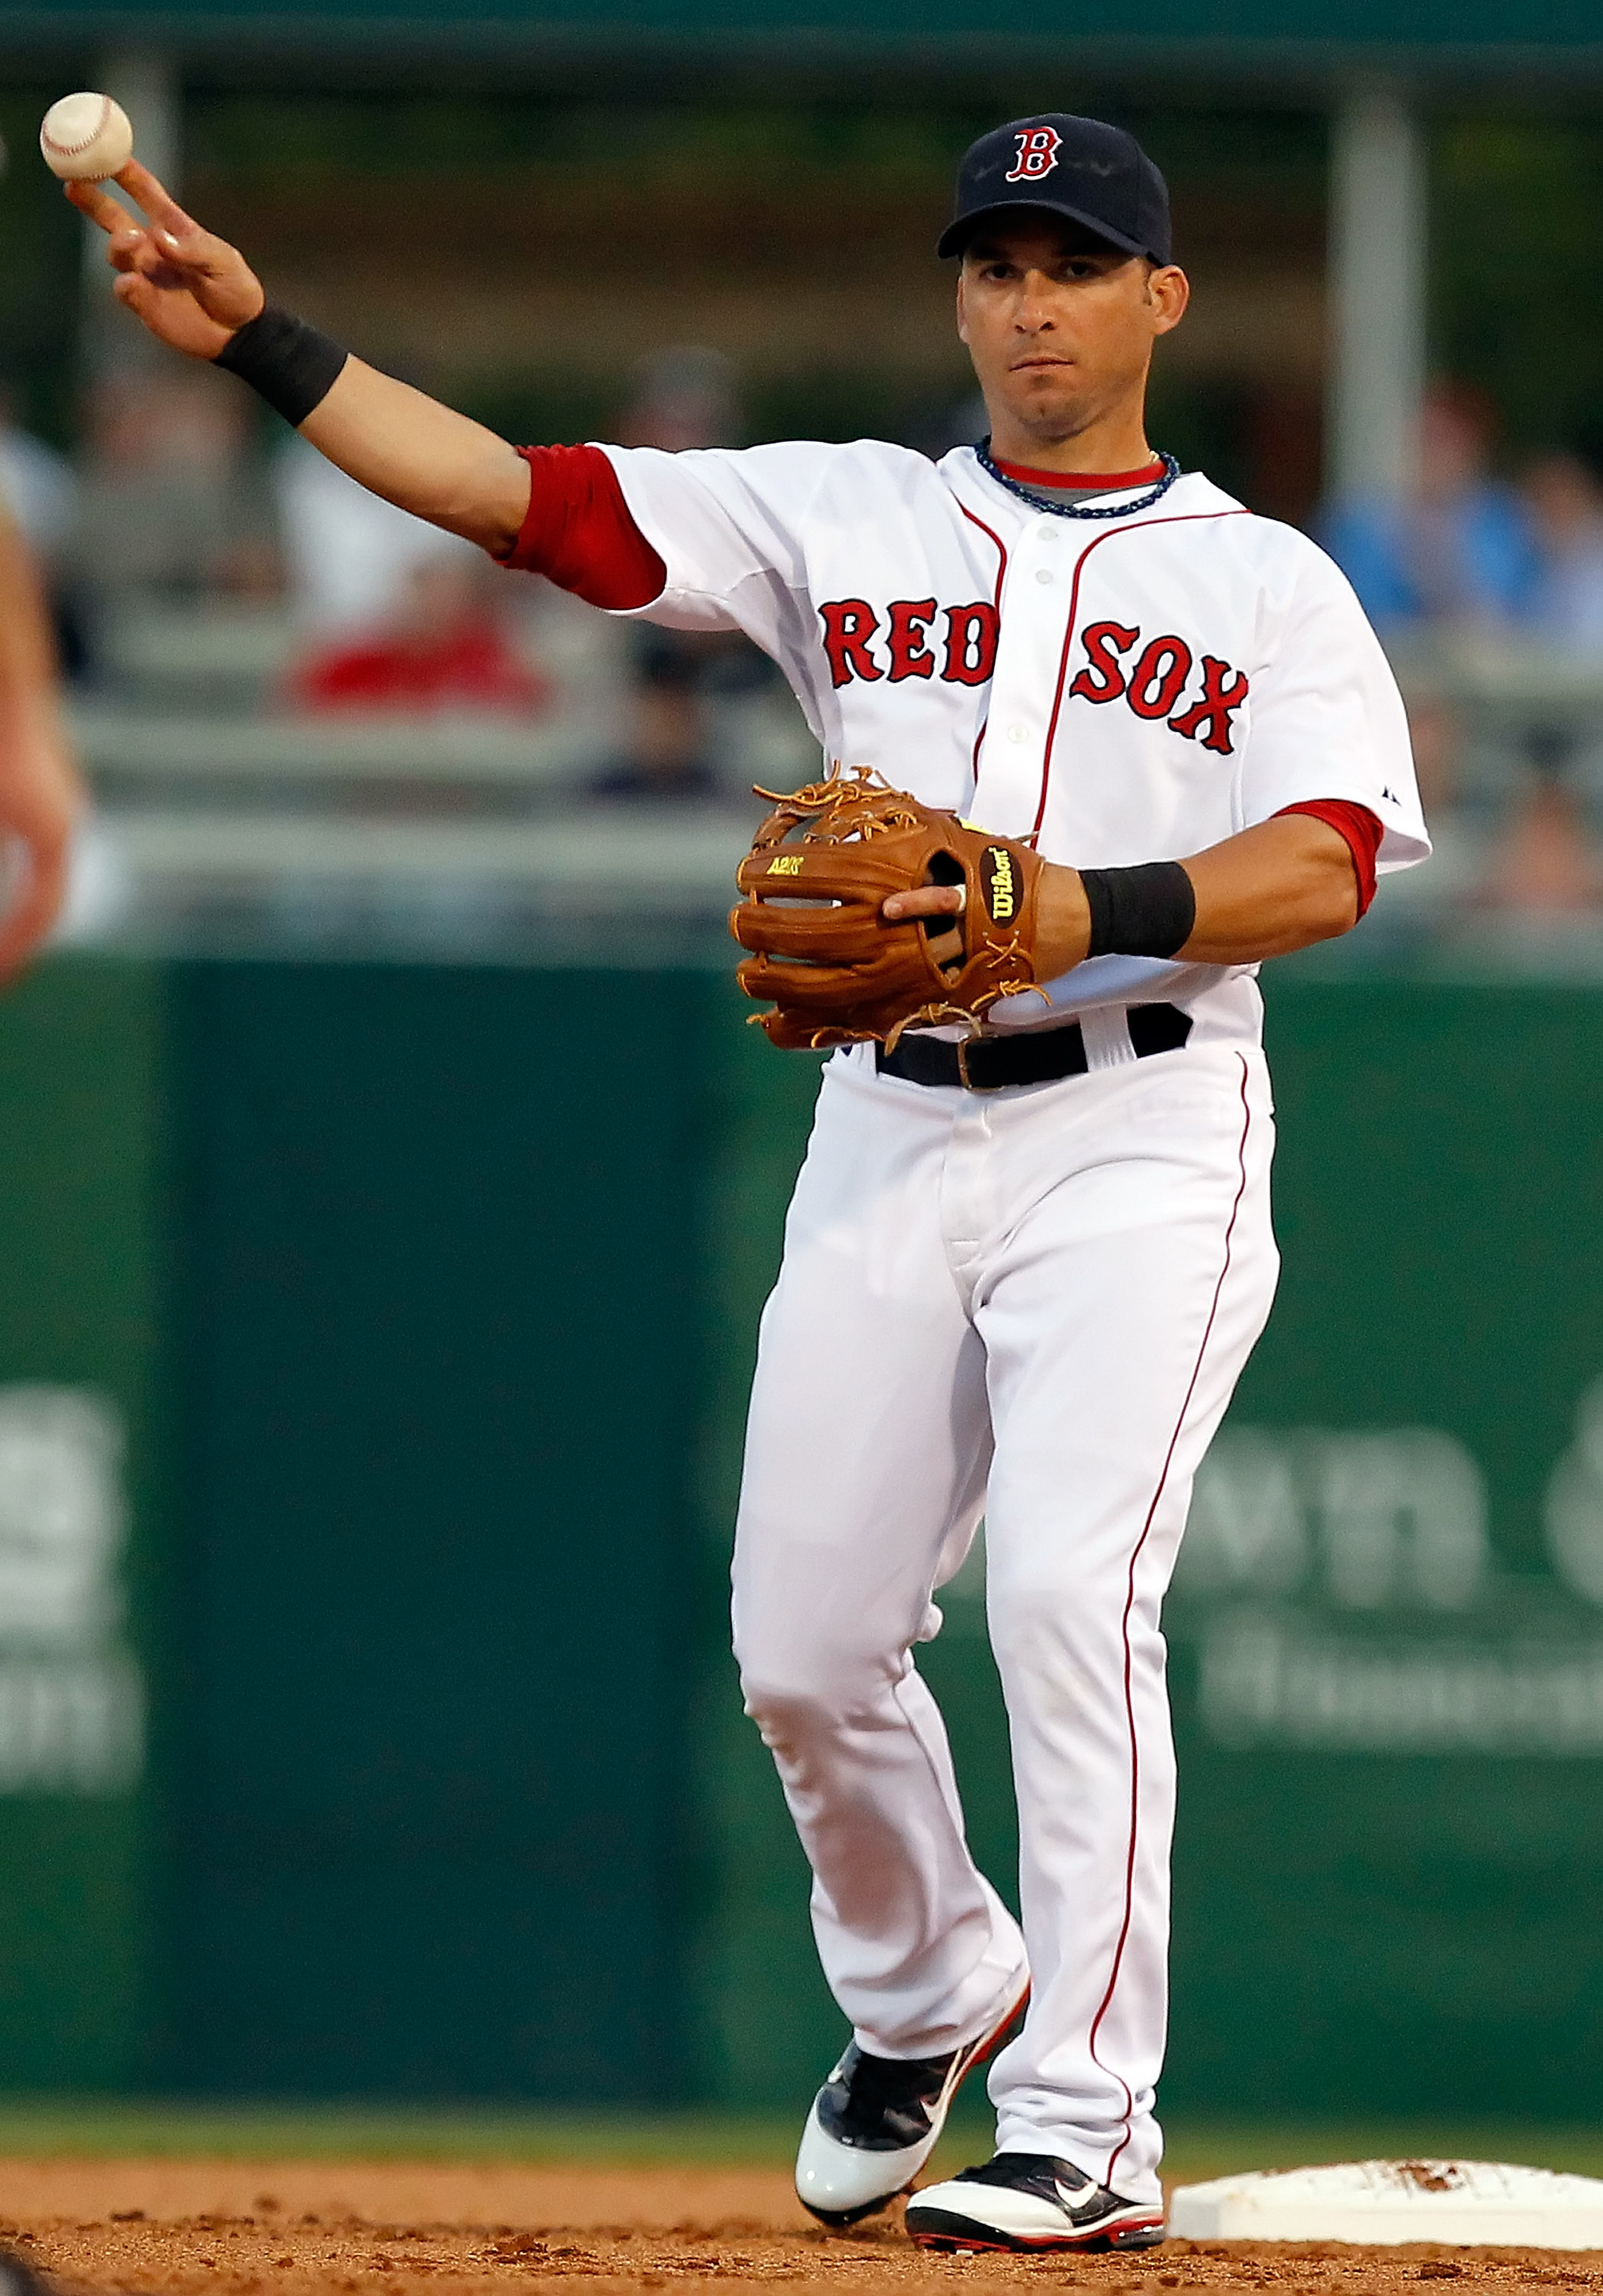 FORT MYERS, FL - MARCH 14:  Shortstop Marco Scutaro #16 of the Boston Red Sox throws the ball against the New York Yankees during a Grapefruit League Spring Training Game at City of Palms Park on March 14, 2011 in Fort Myers, Florida.  (Photo by J. Meric/